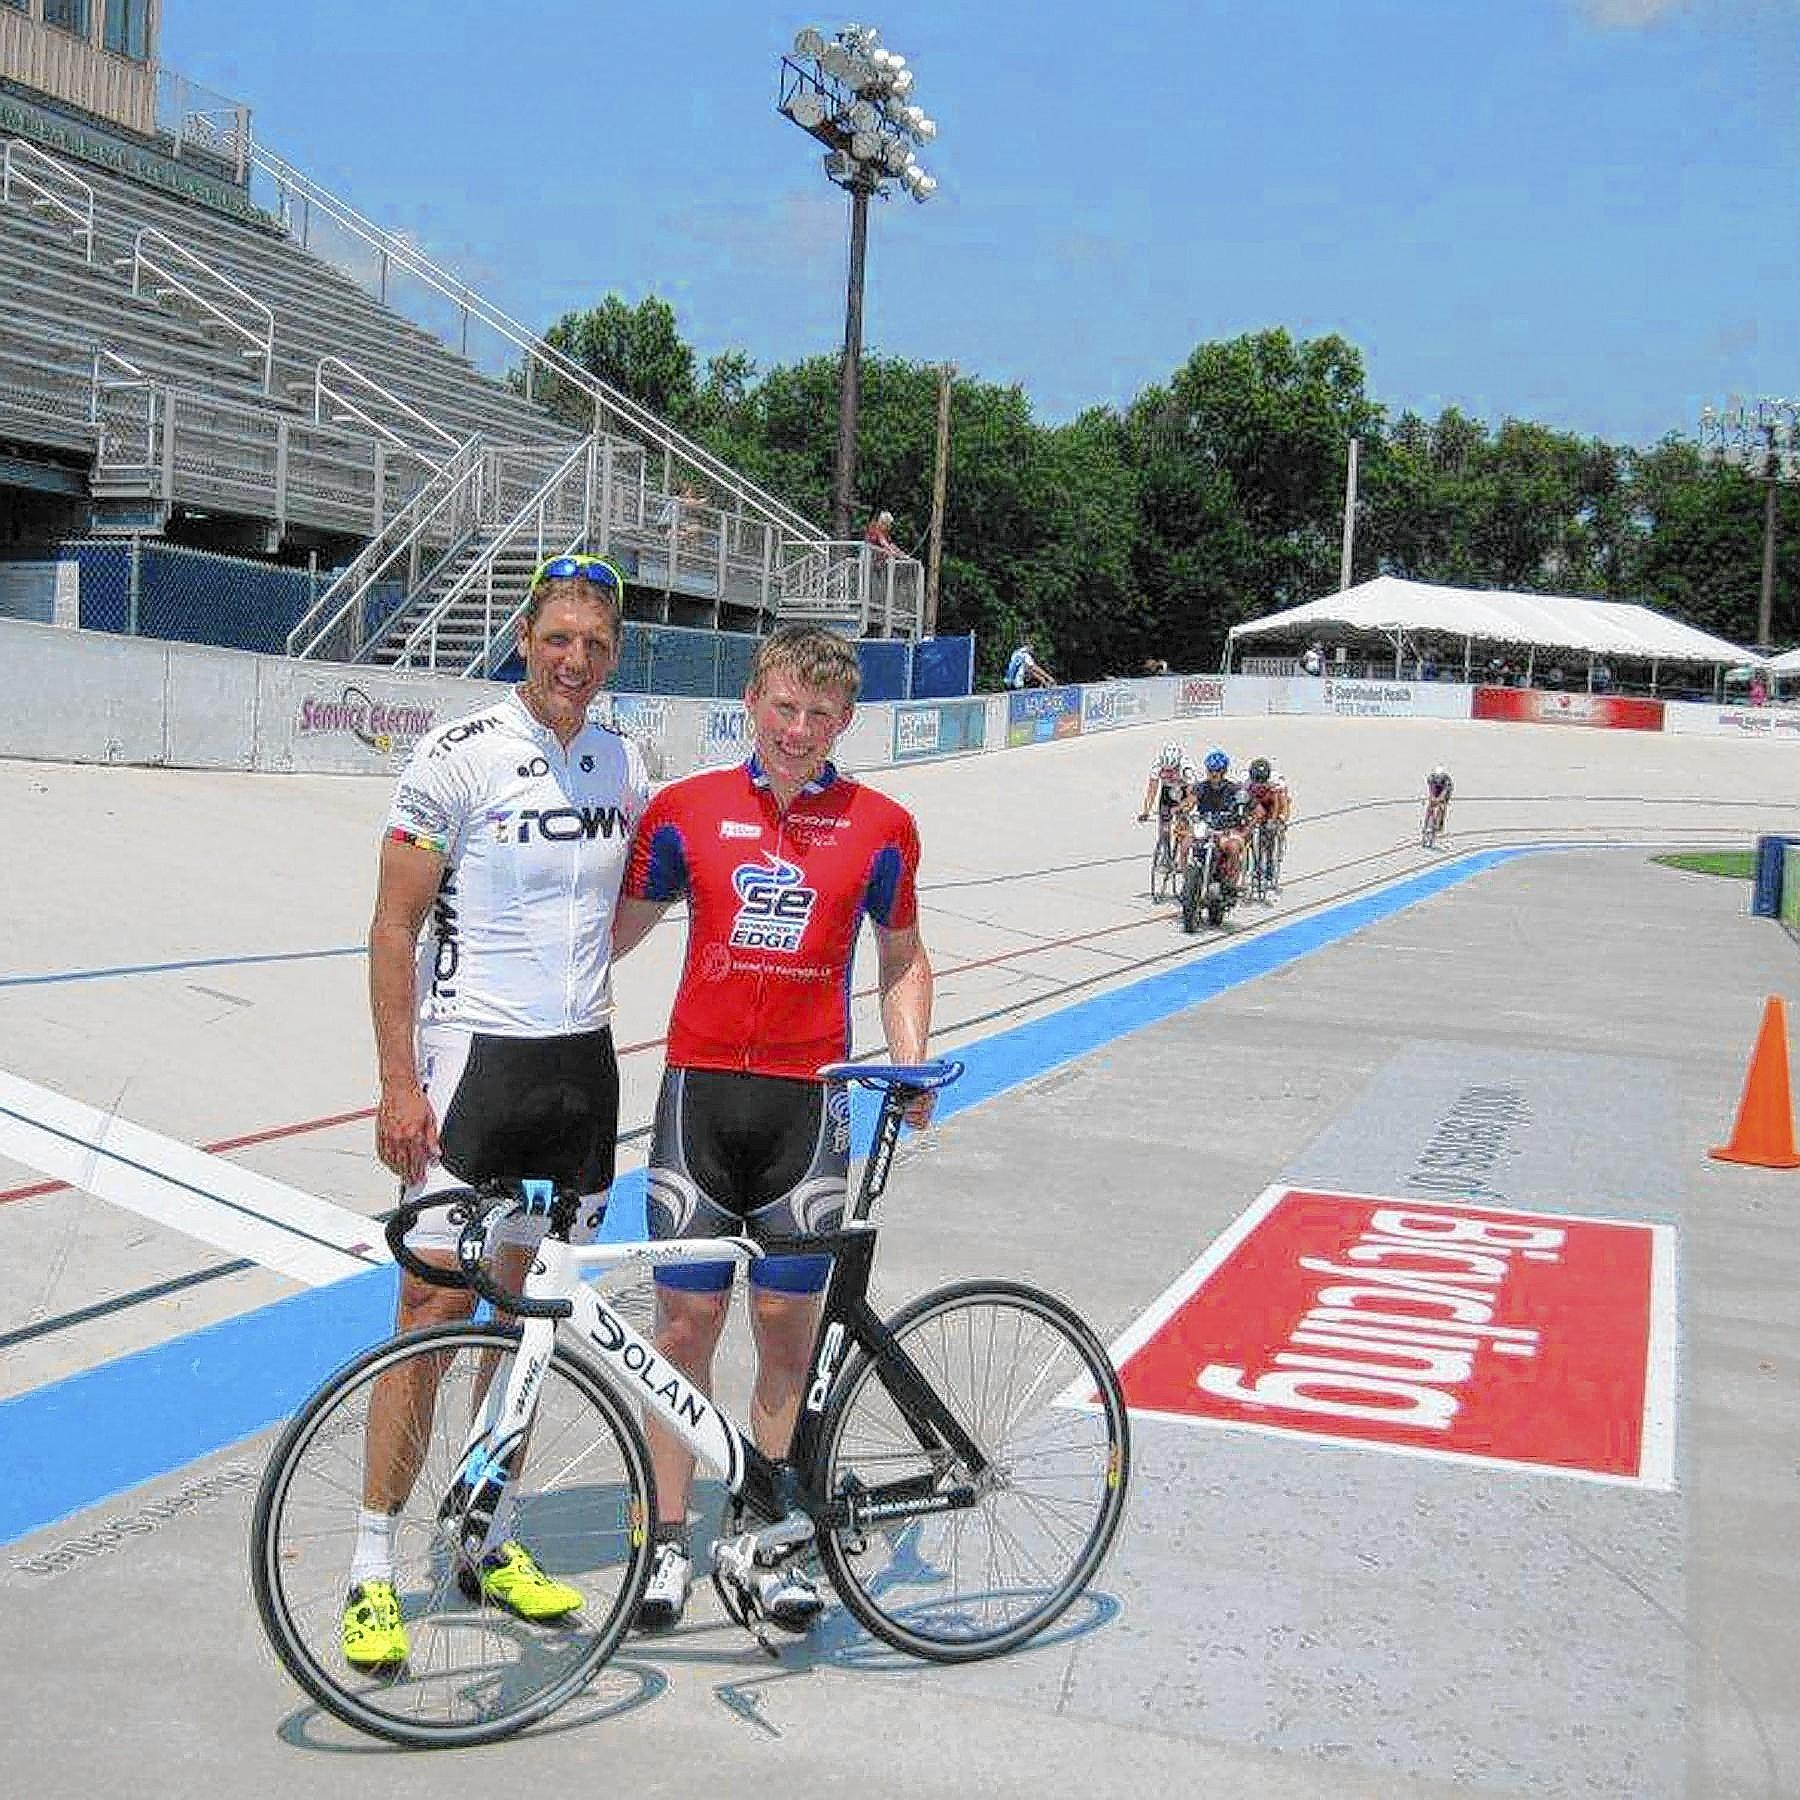 Marty Nothstein (left) joins cyclist James Mellen of Schnecksville during a practice session at the velodrome in Trexlertown.